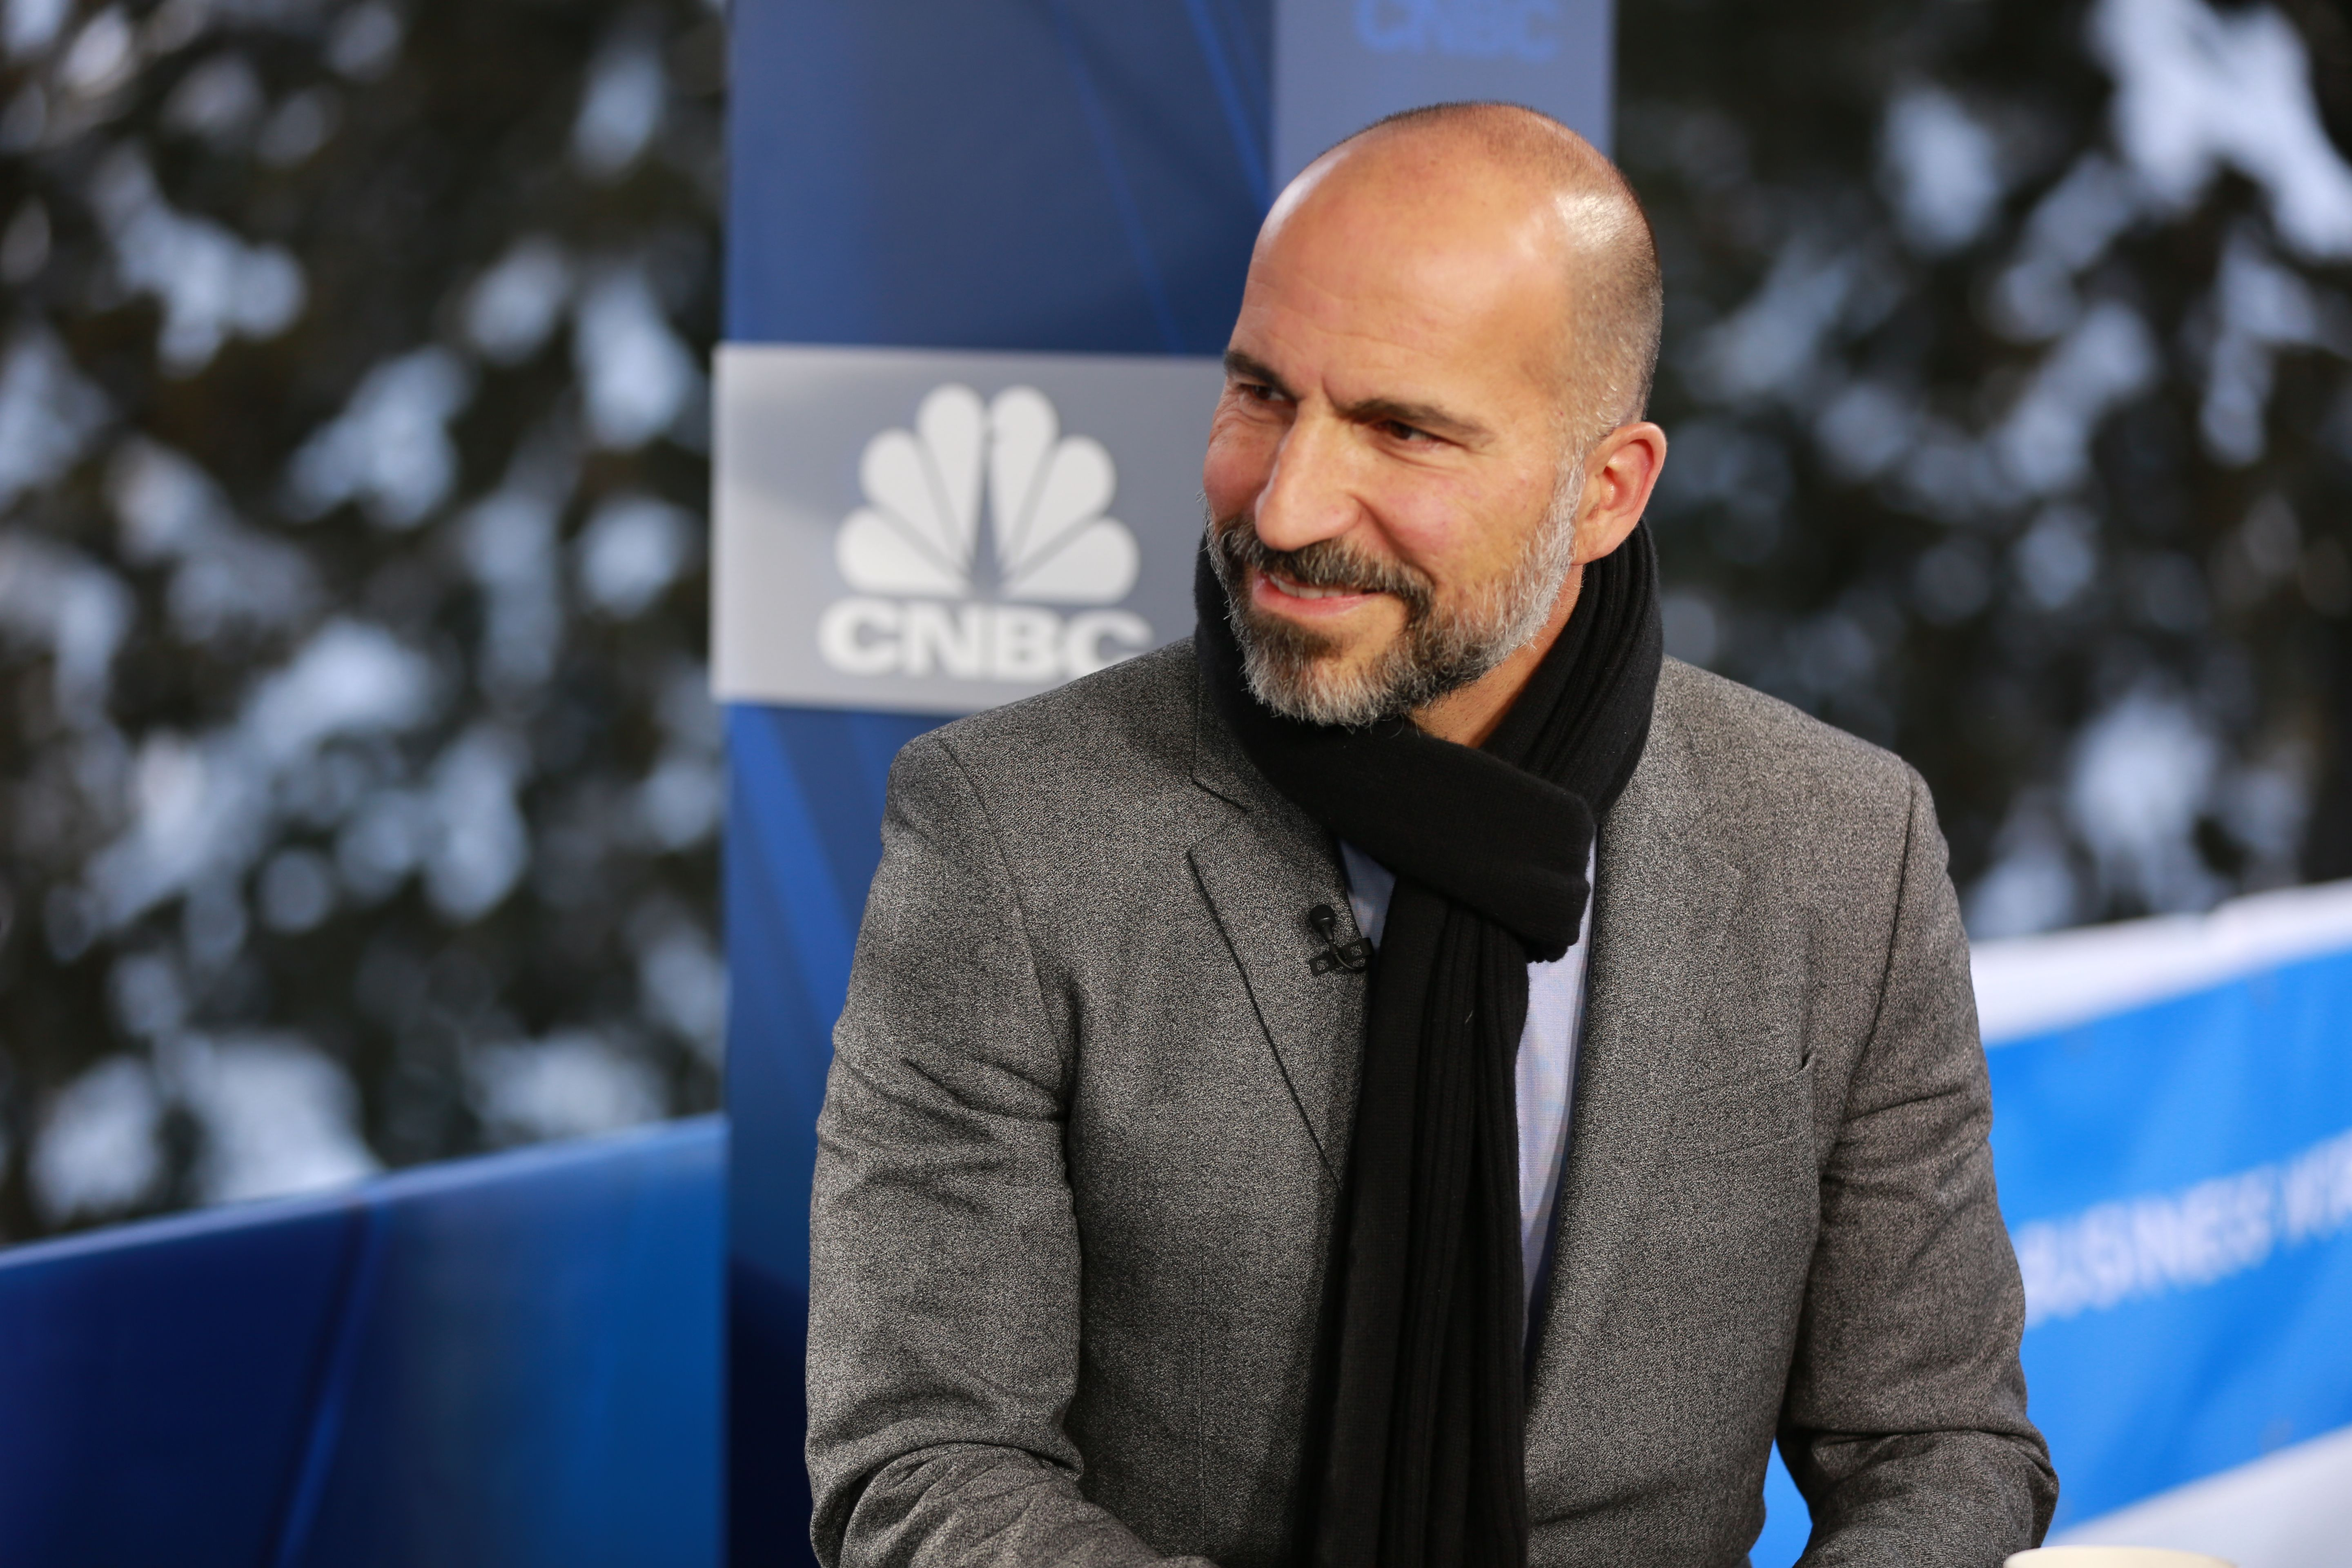 Uber is pitching itself as the next Amazon as it loses billions